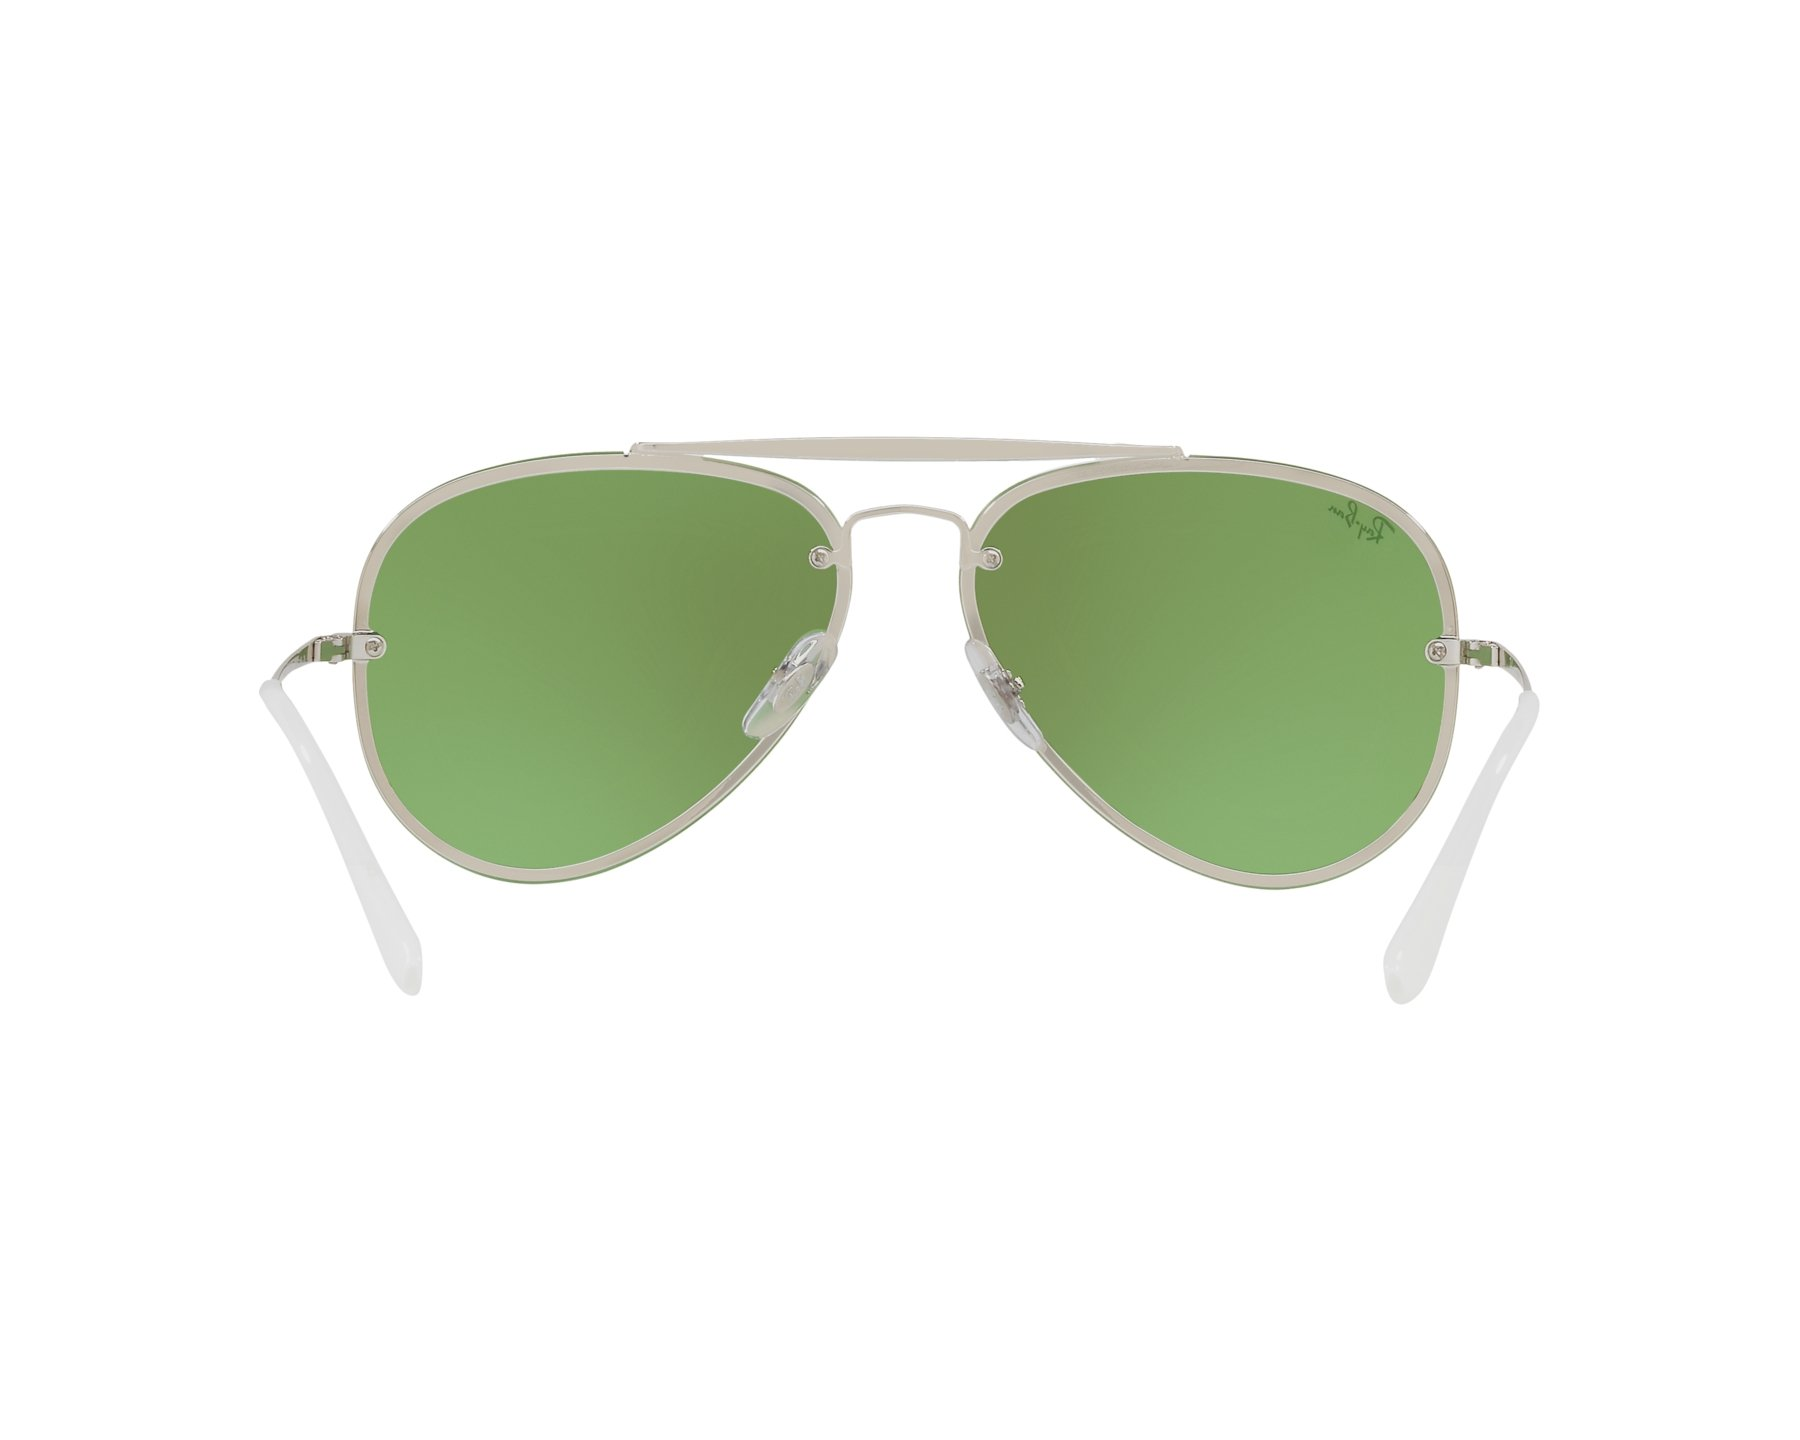 Ray Ban Sunglasses Rb 3584 N 905130 Buy Now And Save 9